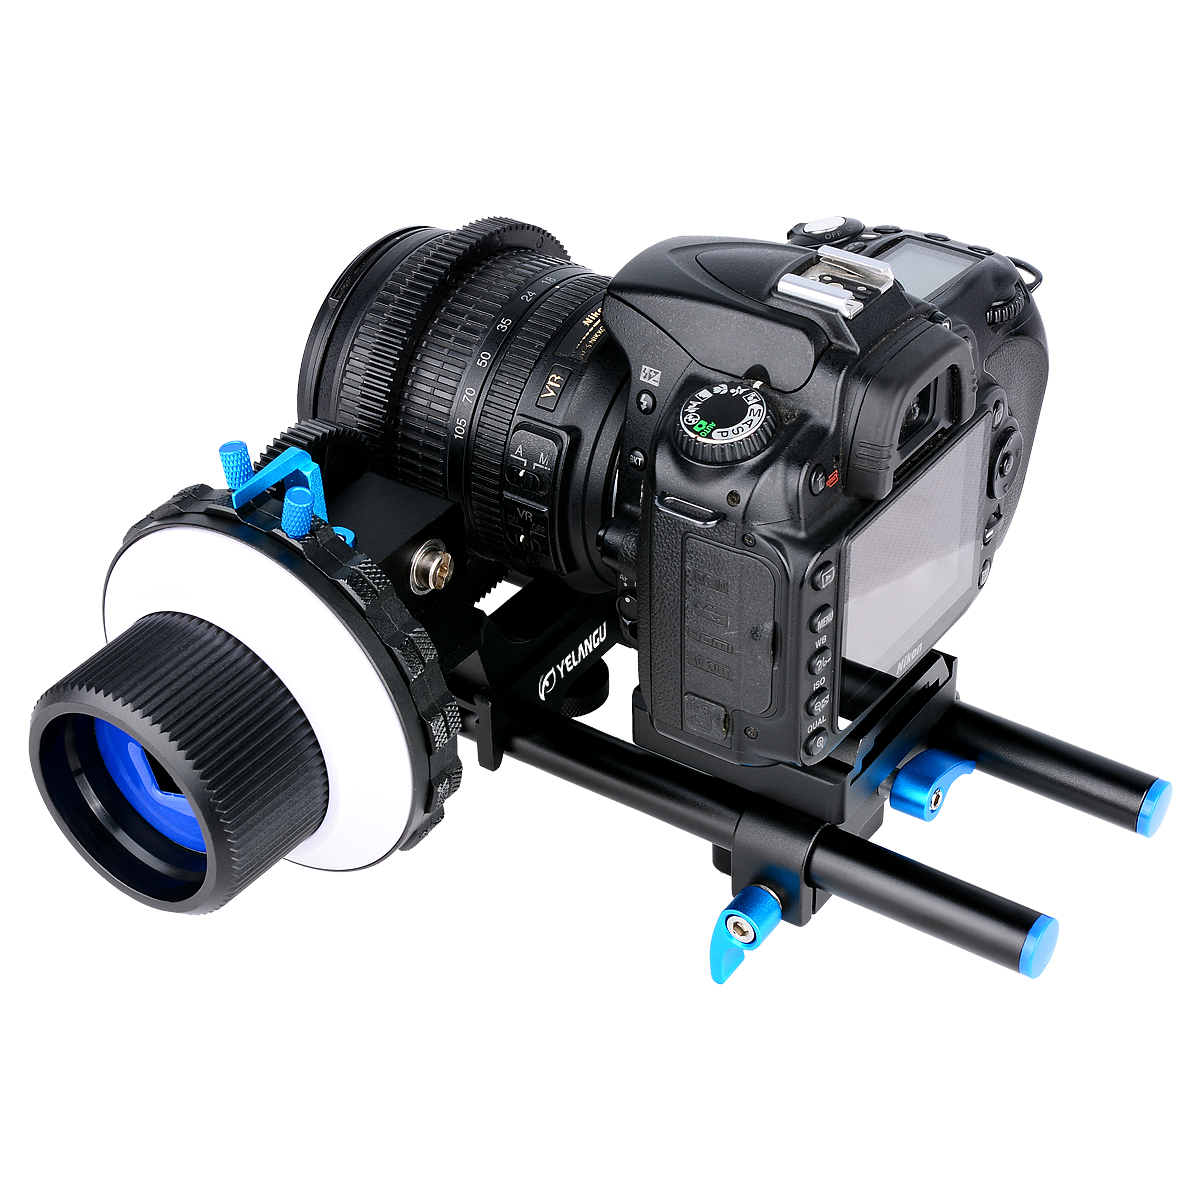 Dslr Rig Shoulder Mount matte Box Camera DSLR Follow Focus